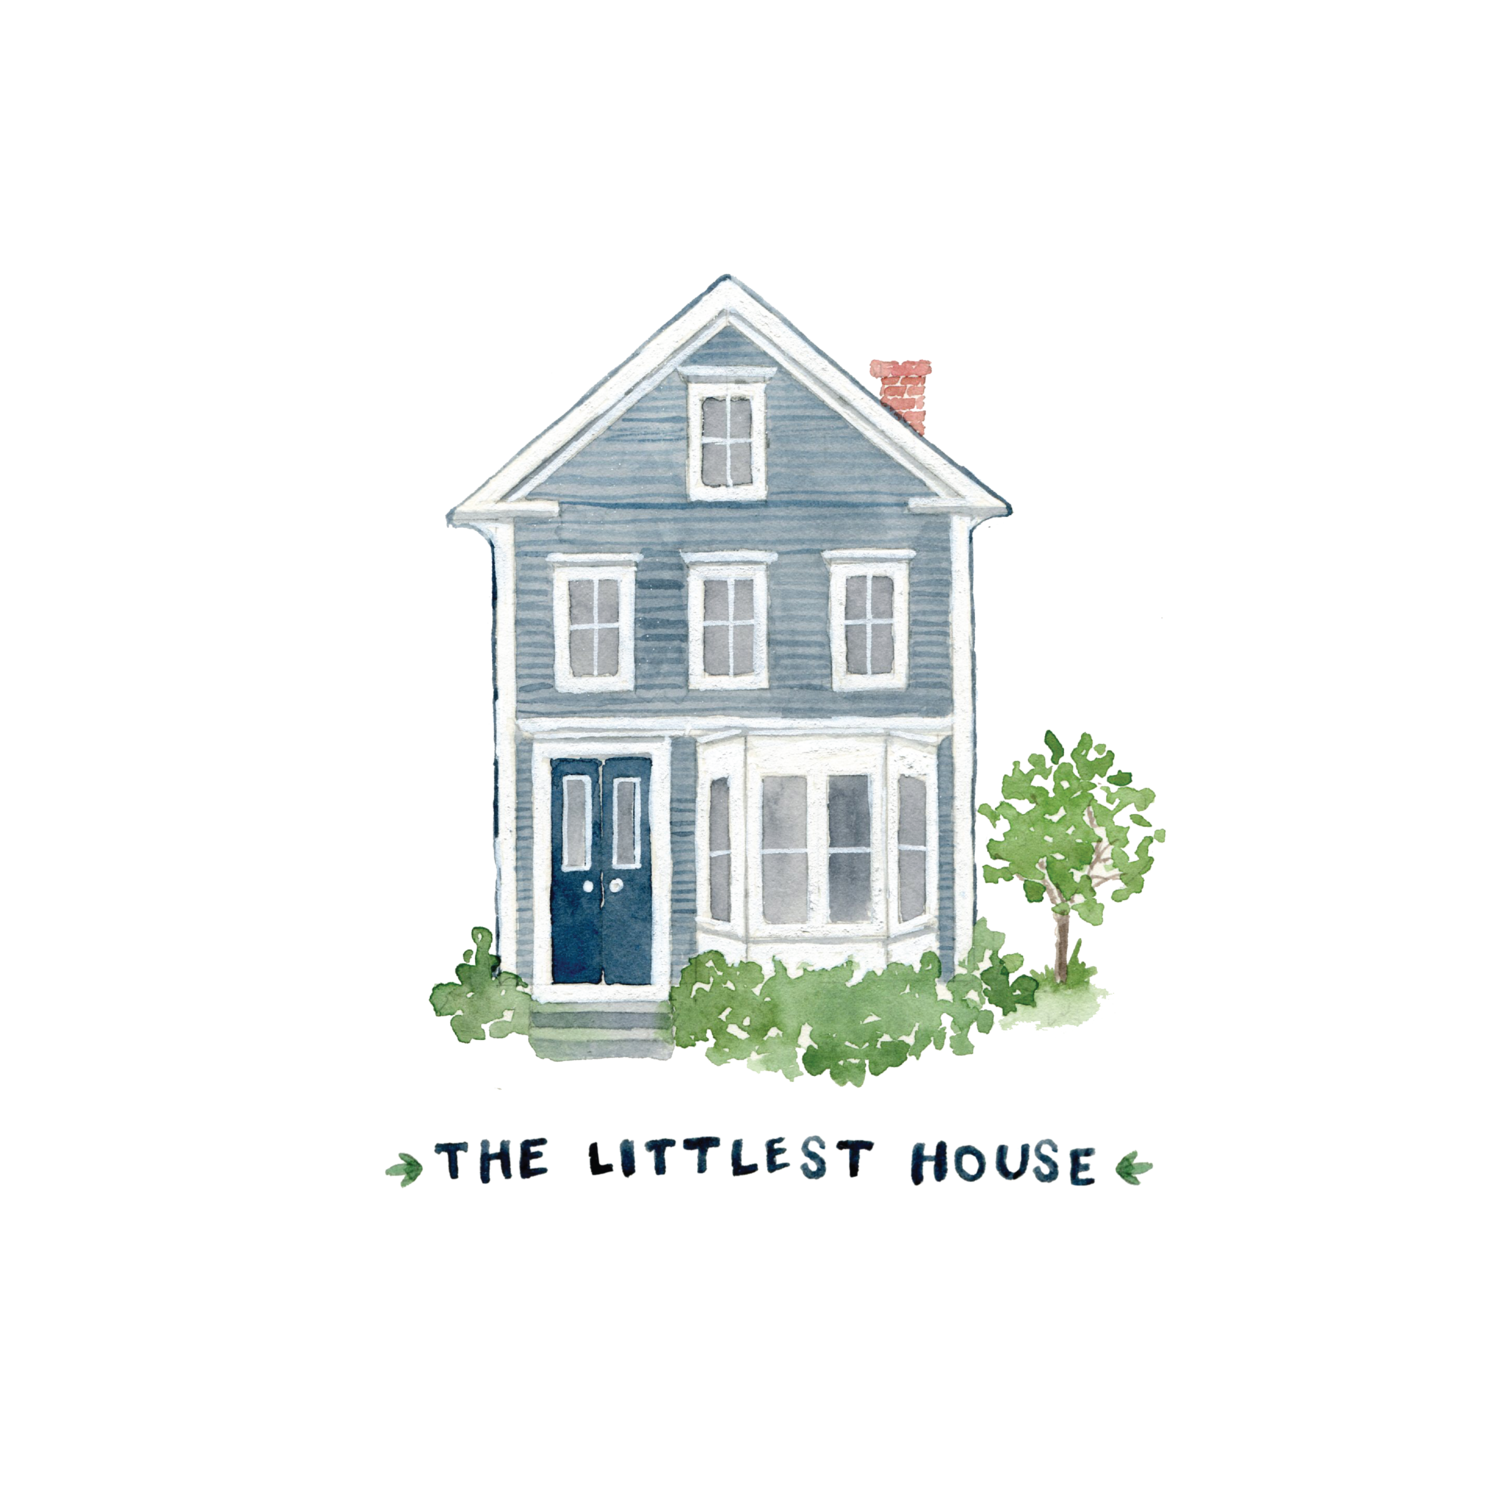 The Littlest House